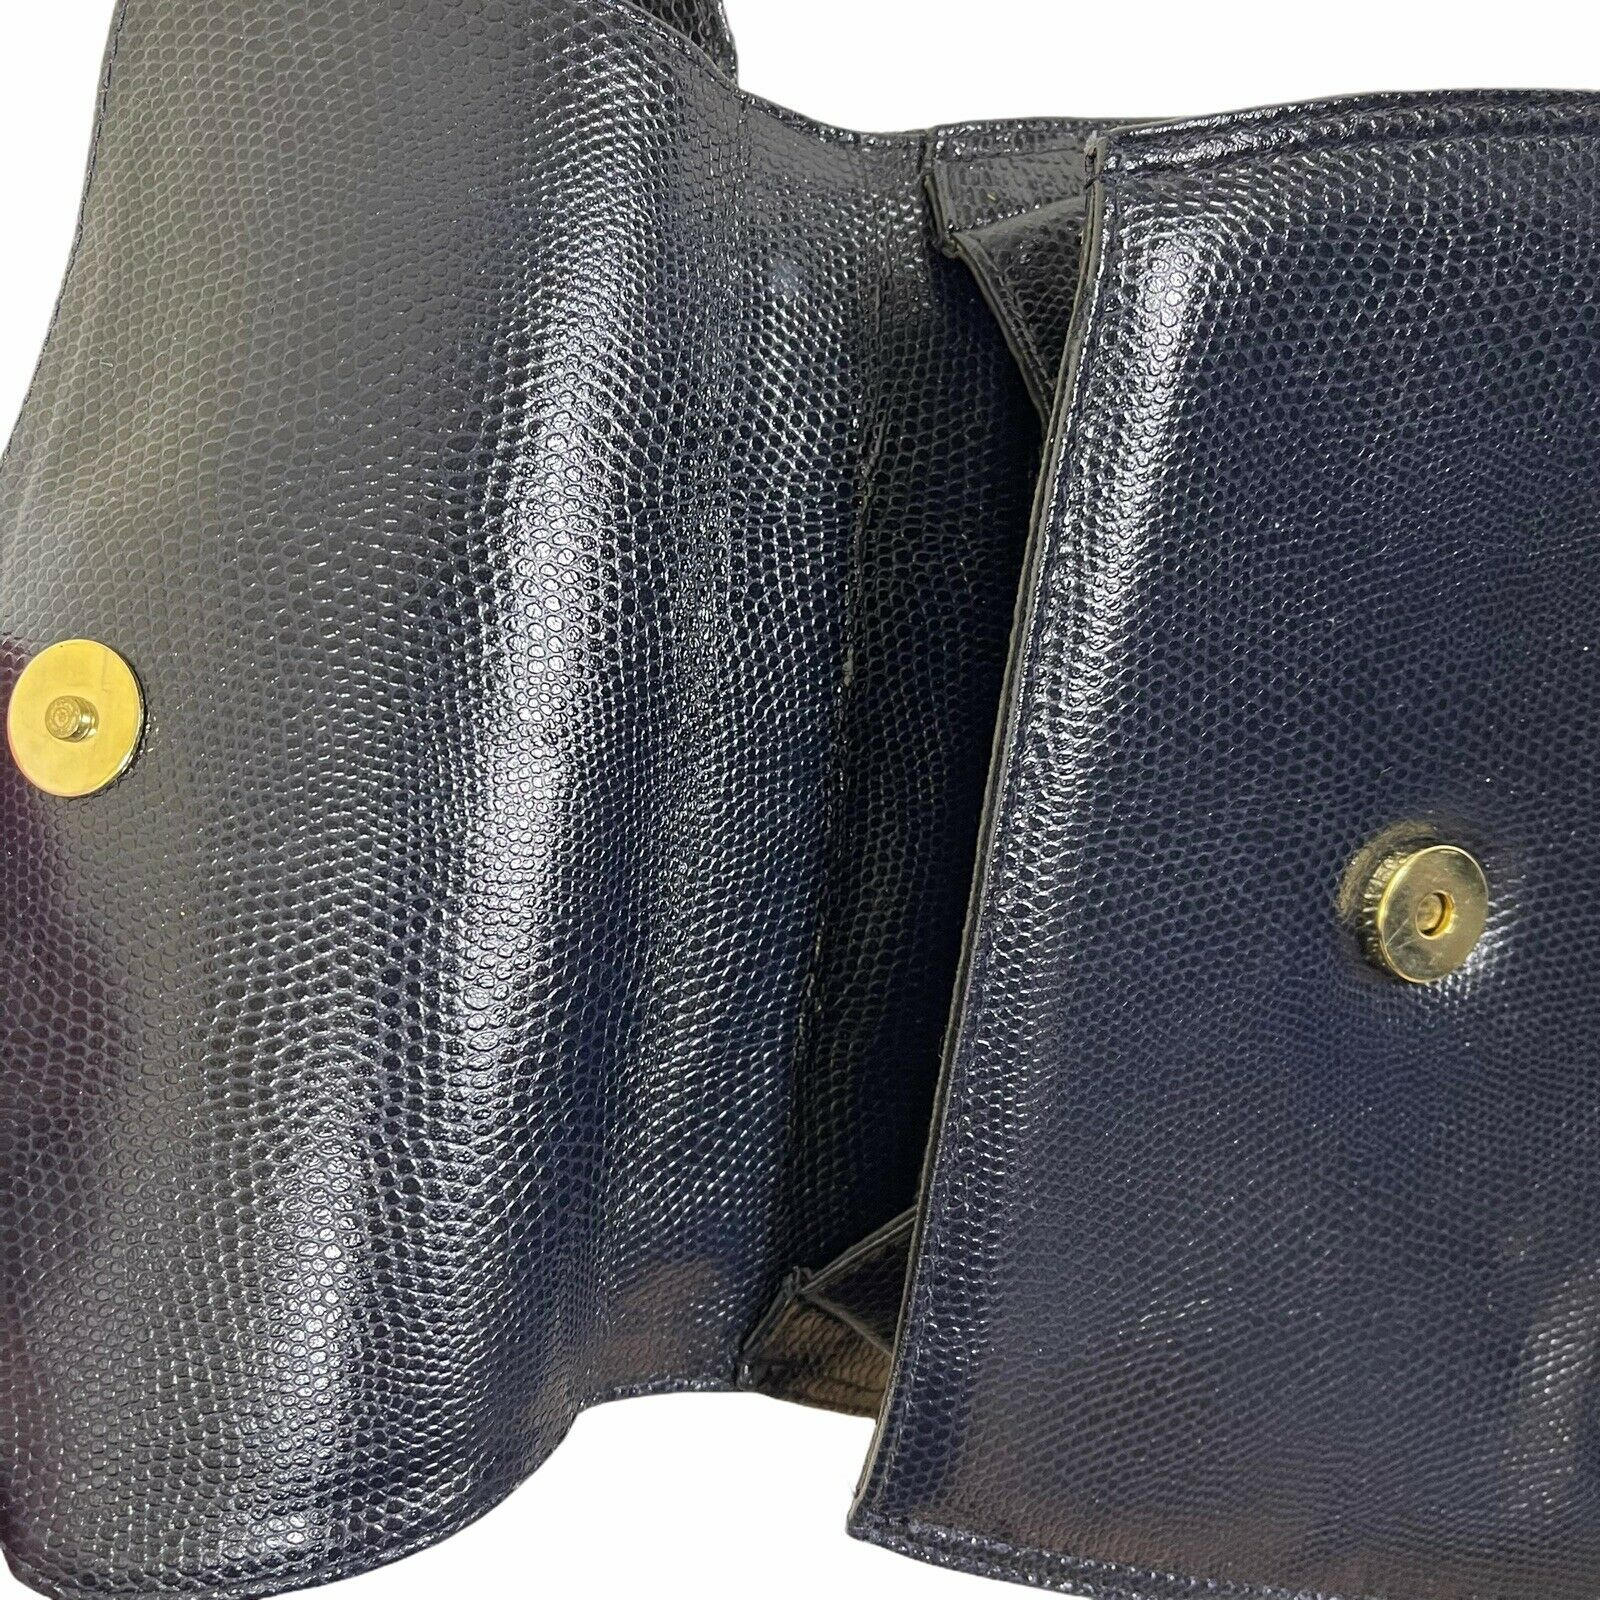 ARNOLD SCAASI NAVY LIZARD LEATHER WITH BOWS WOMEN… - image 6